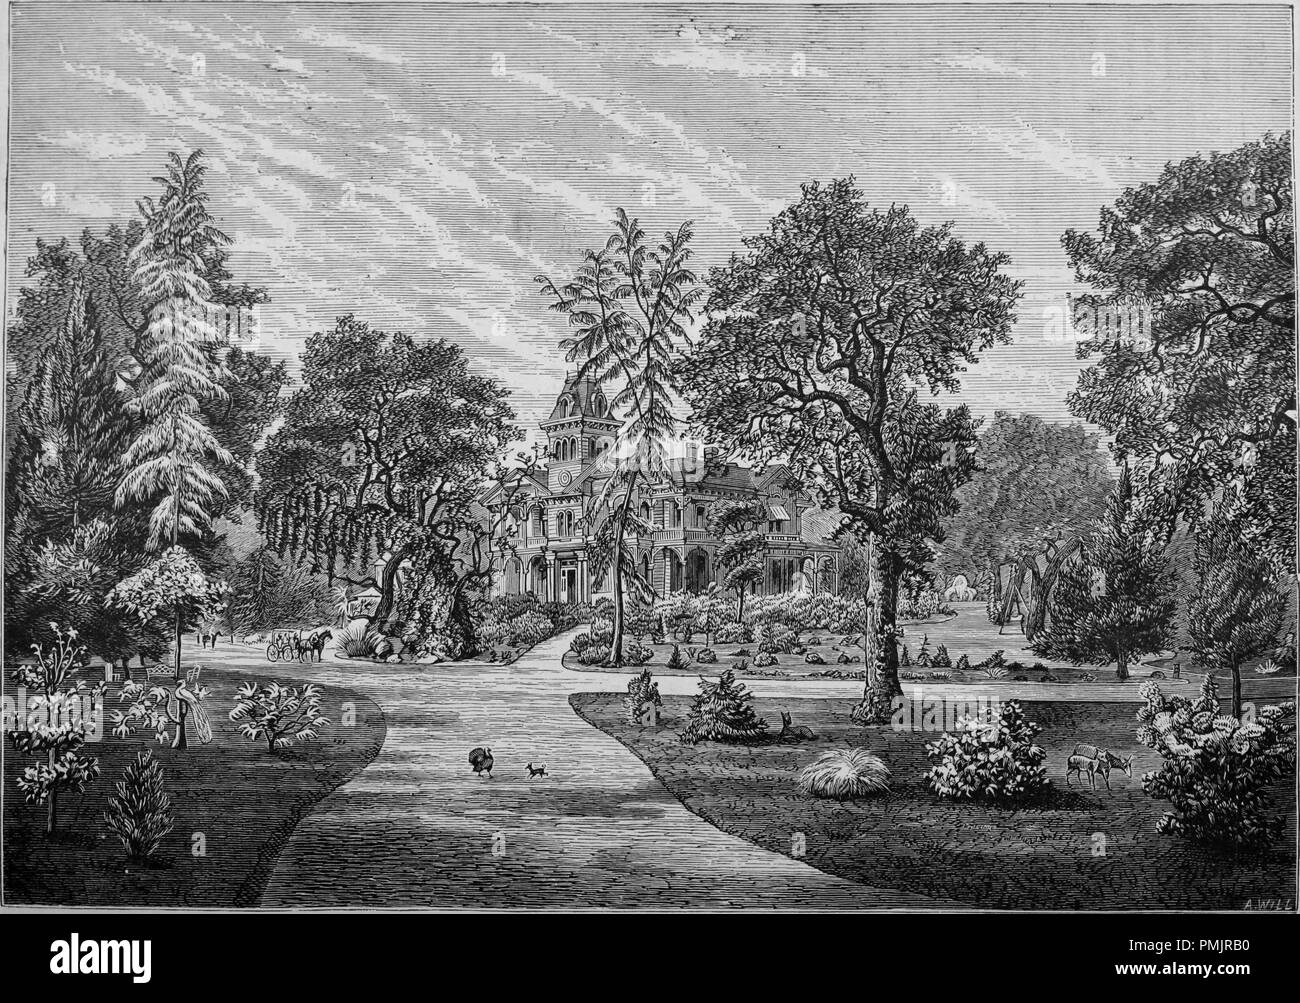 Engraving of the park and pleasure grounds at Oak Knoll, Napa Valley, California, from the book 'The Pacific tourist', 1877. Courtesy Internet Archive. () - Stock Image